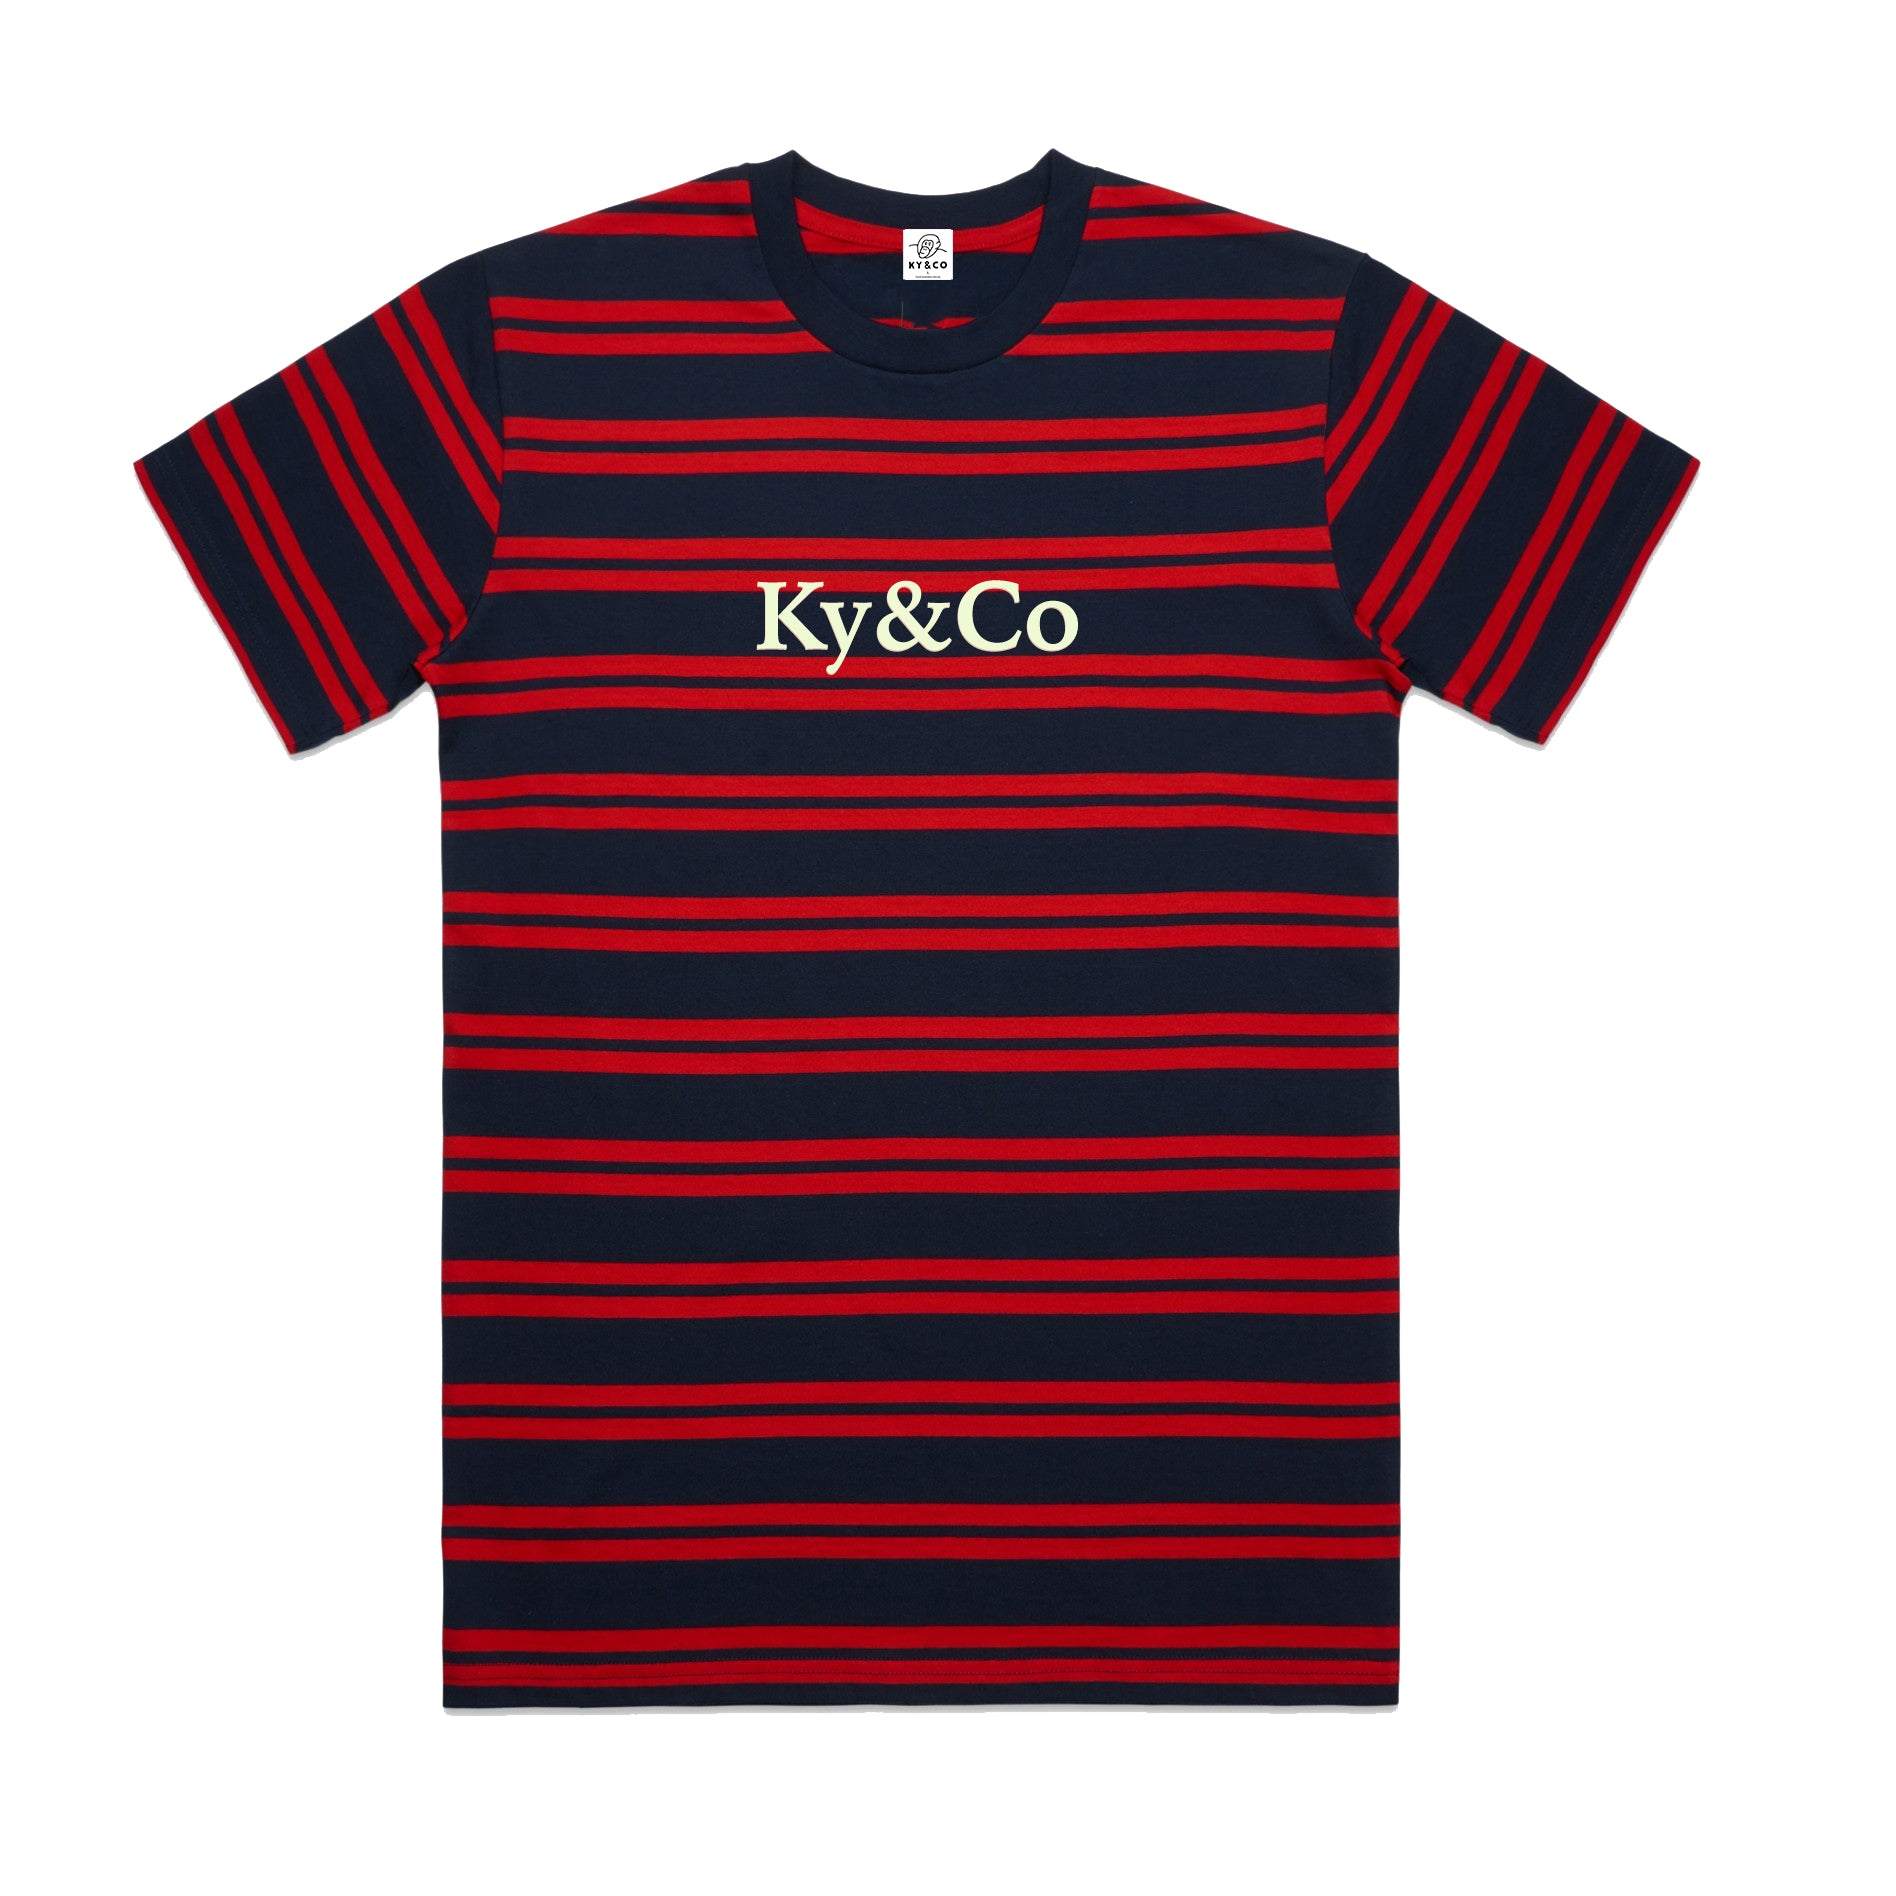 Ky&Co Navy & Red Striped Tee - Ky&Co Australia